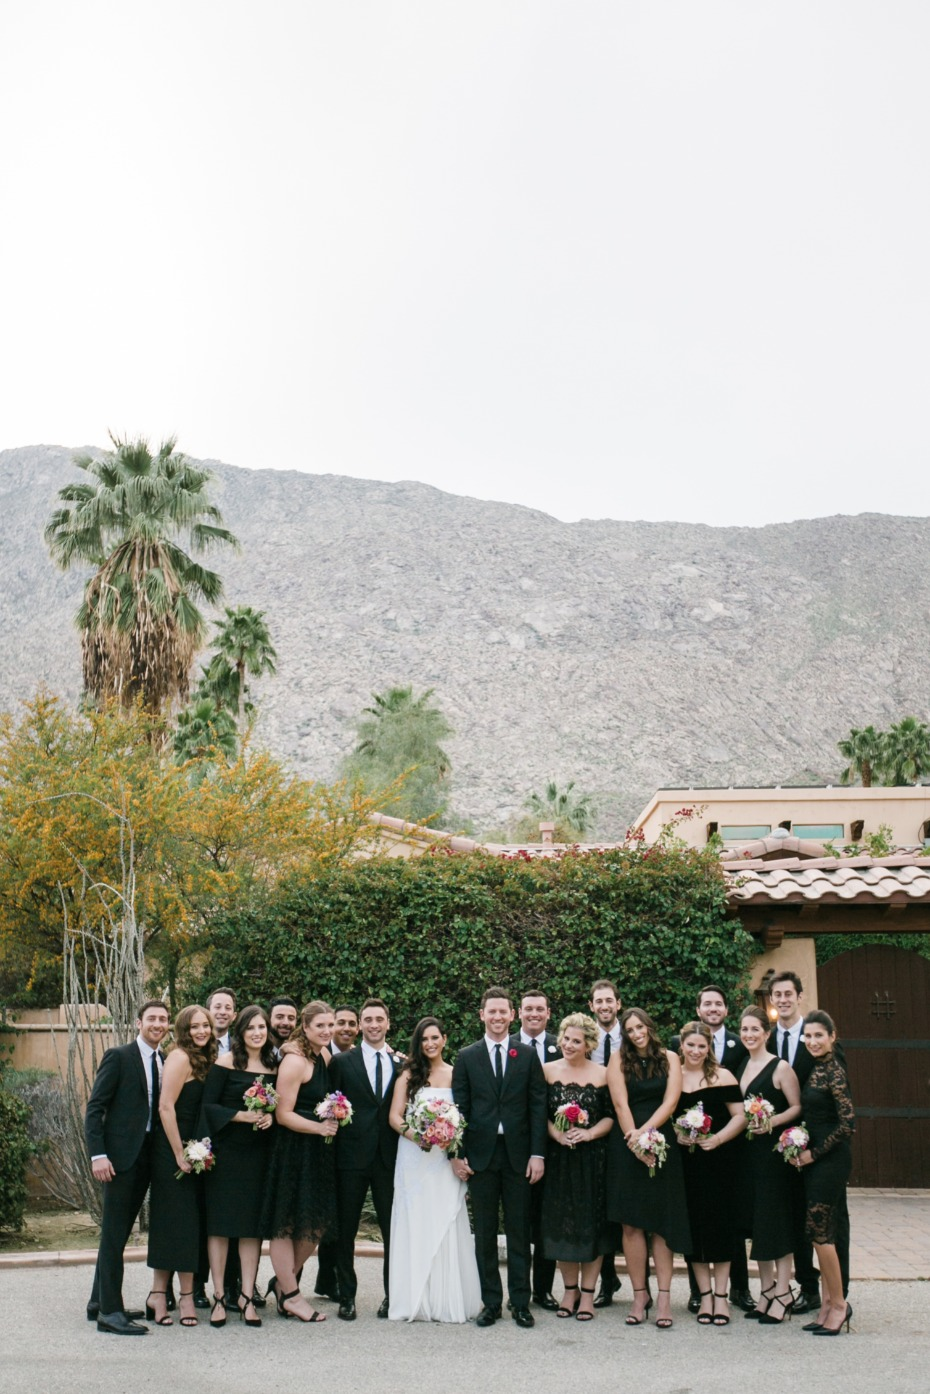 Chic wedding party in black